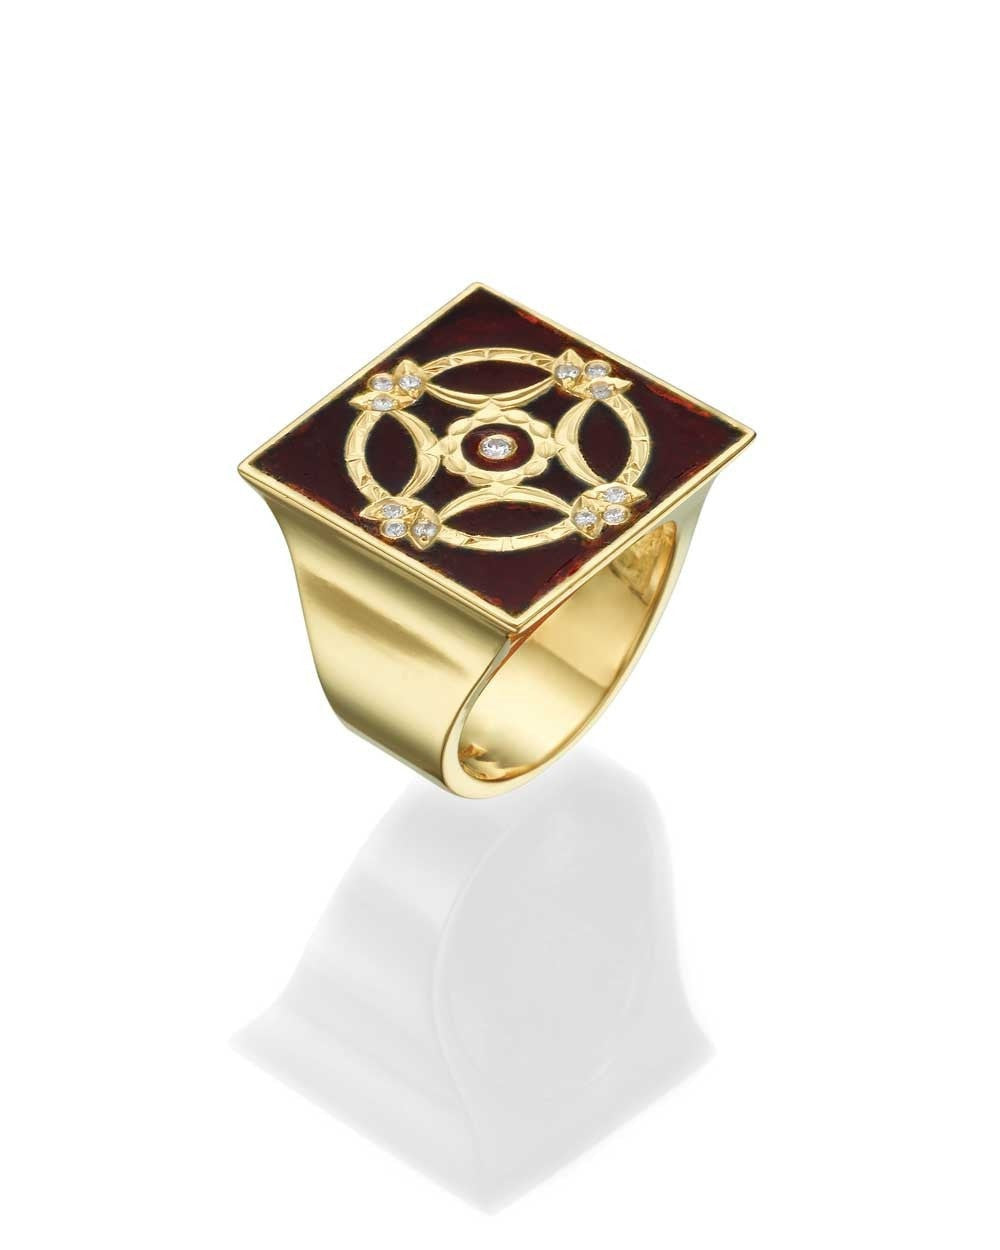 Insignia Yellow Gold Women's Signet Ring - Red Enamel and 0.12ct Diamonds